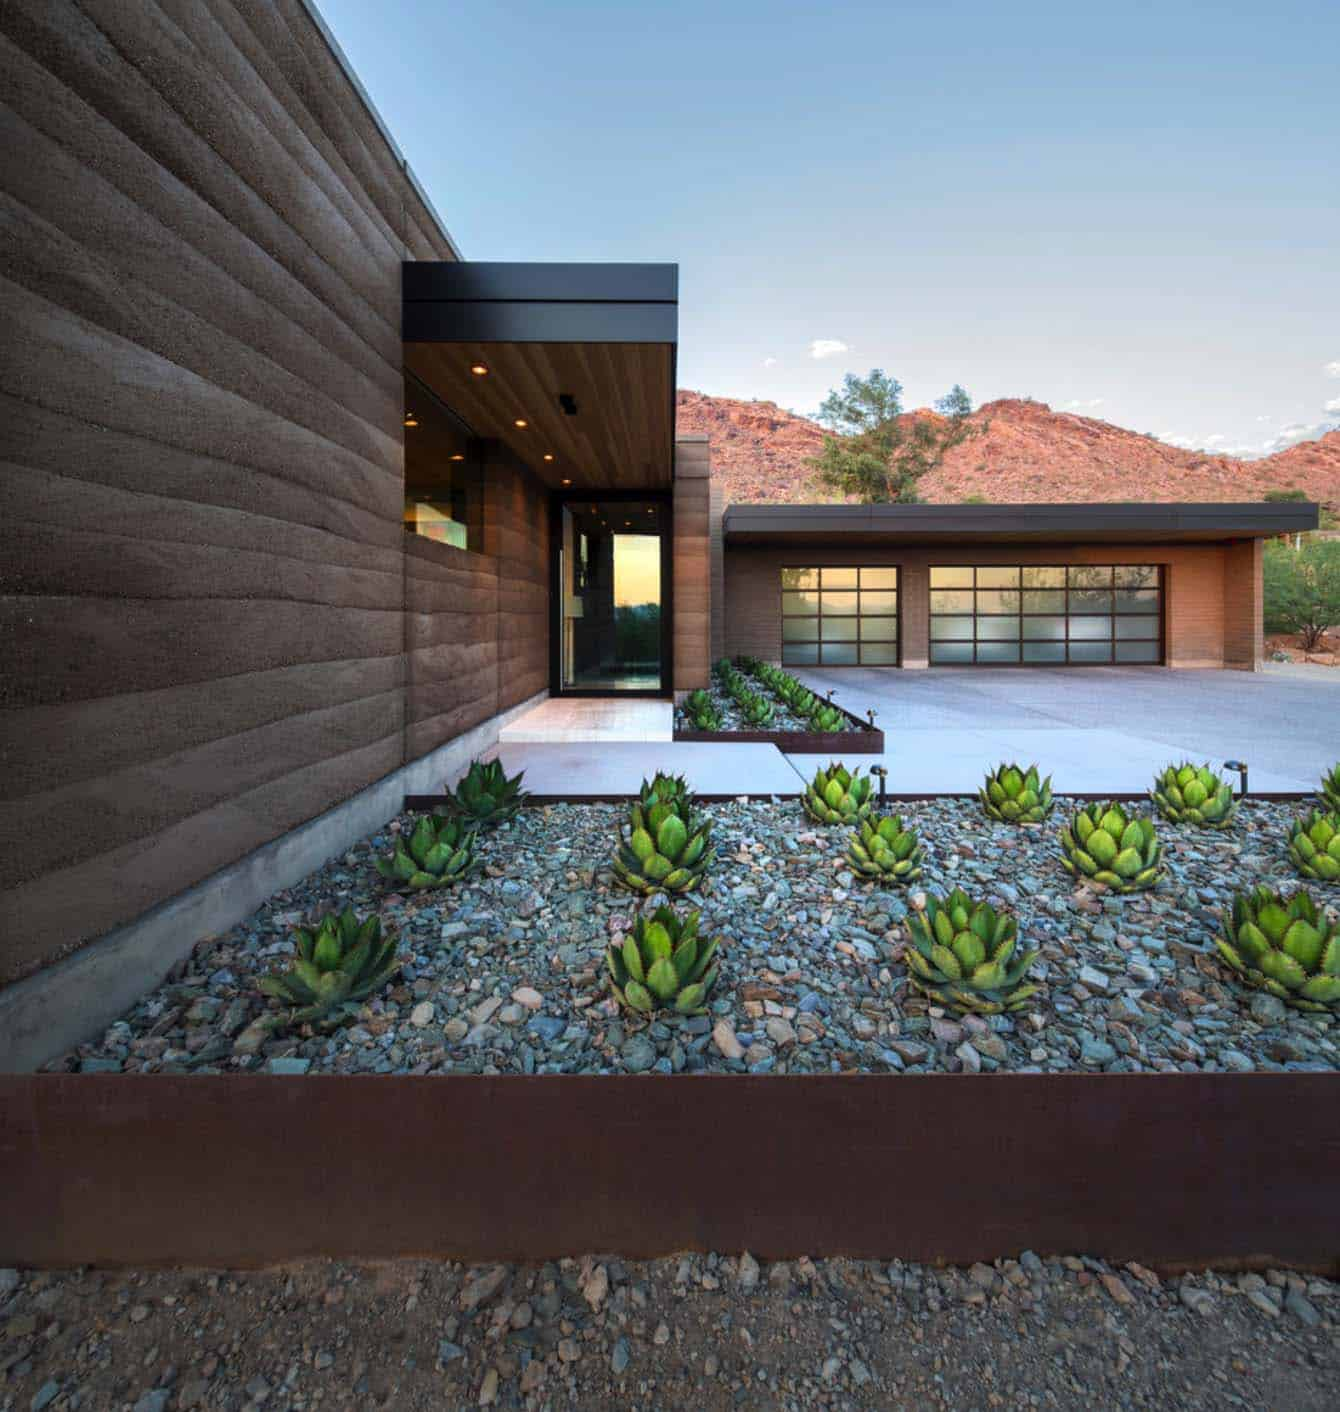 Fascinating rammed earth home piercing the deserts of Arizona on front porch with columns designs, cement home designs, earth architecture designs, sea container home designs, structural insulated panel home designs, rock home designs, prefab home designs, sips home designs, brick home designs, earthship home designs, winery home designs, superadobe home designs, building home designs, adobe earth home designs, modular home designs, shipping containers home designs, straw bale home designs, stone home designs,